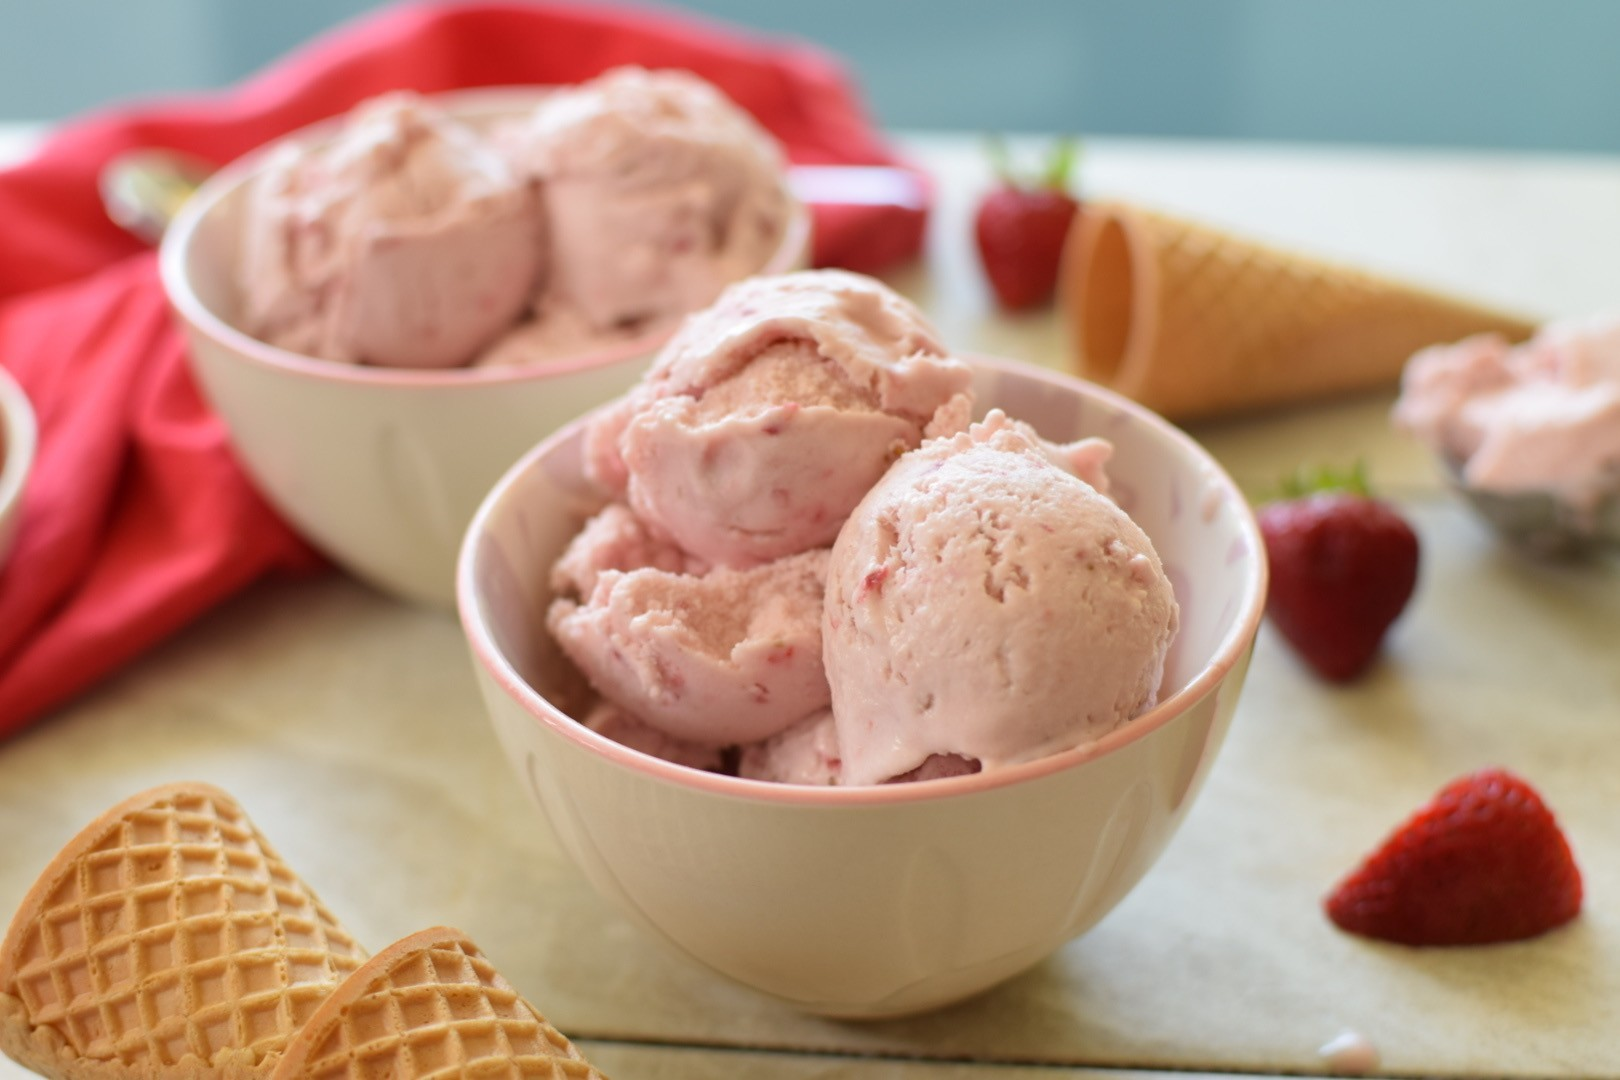 Strawberry Ice Cream for a Candida Diet